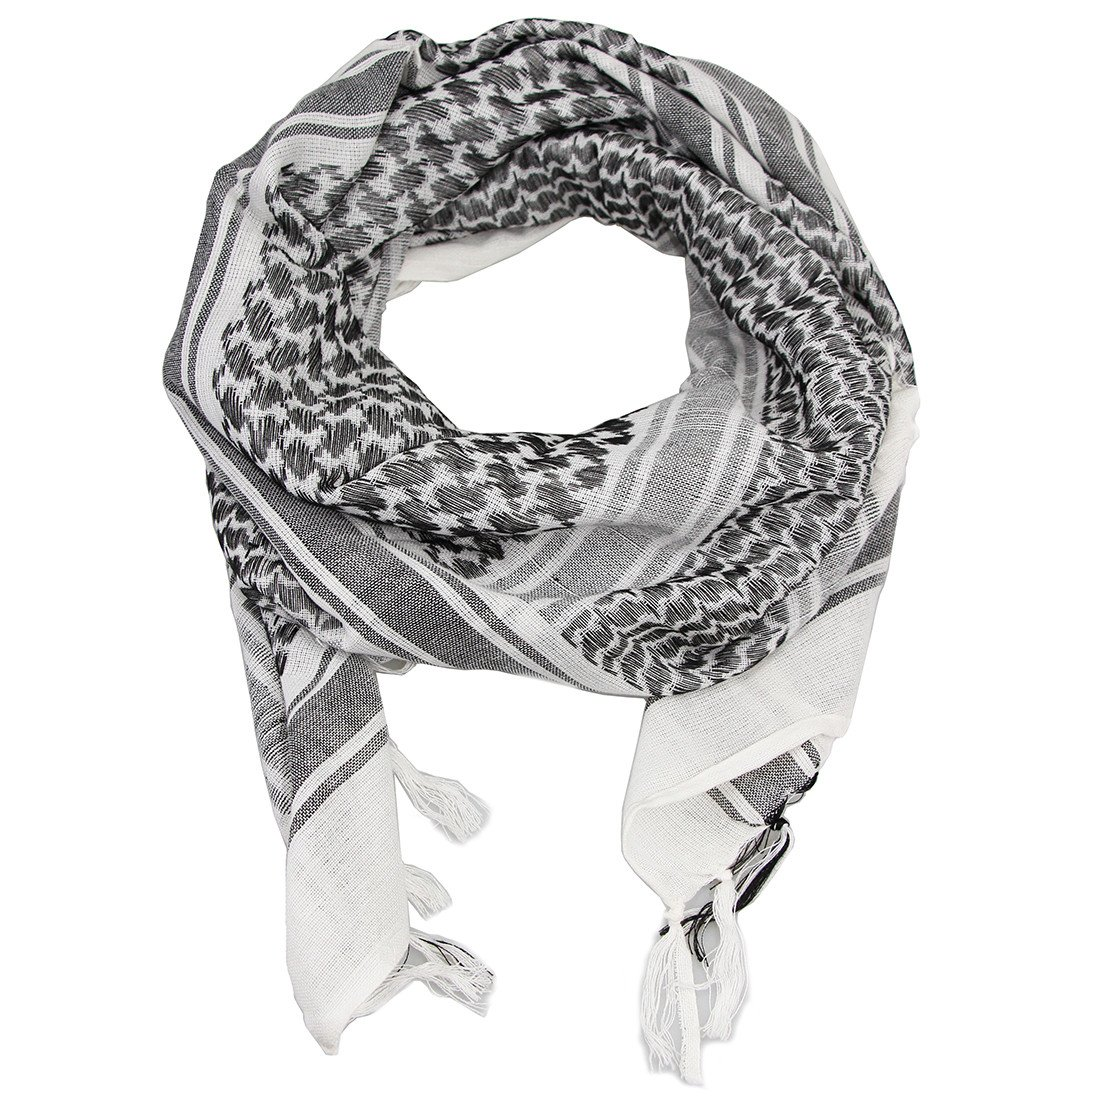 100% Cotton Tactical Shemagh Military Desert Shawl Head Neck Scarf Wrap For Men Women, White & Black, One Size